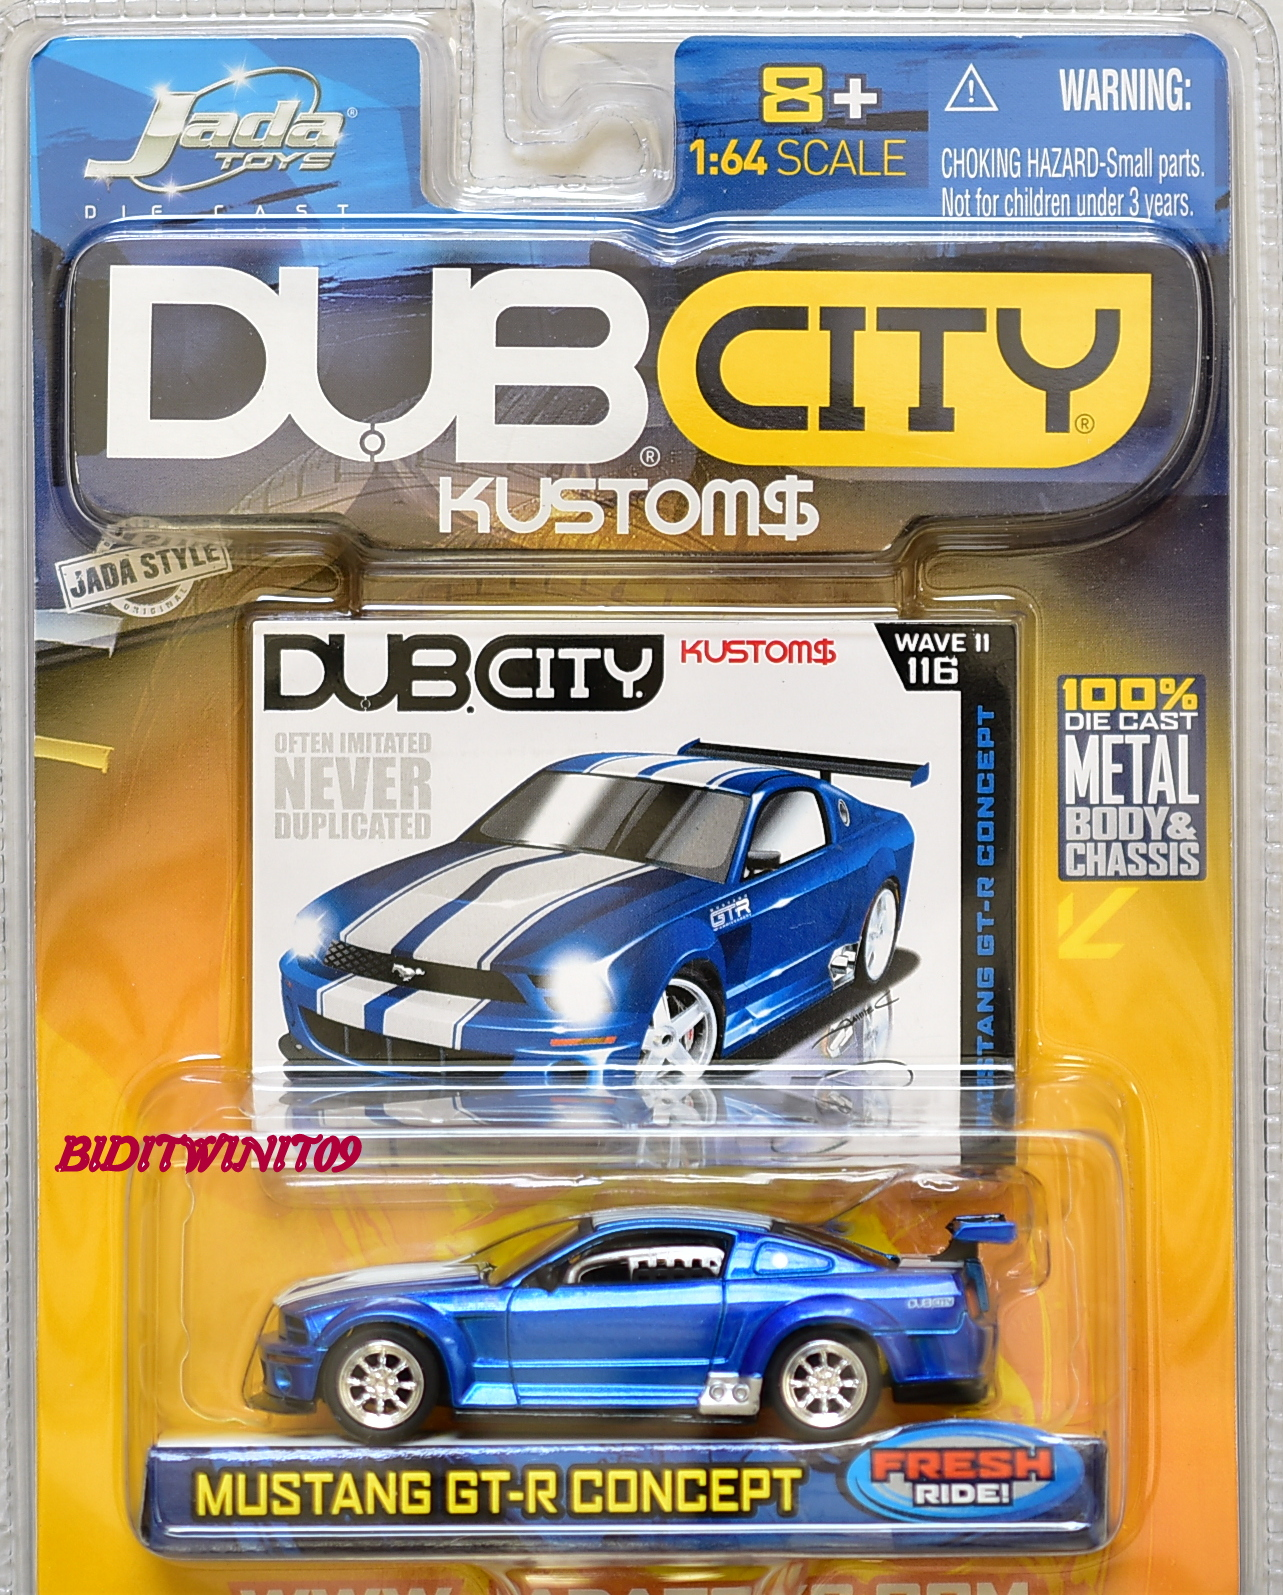 JADA TOYS DUB CITY KUSTOMS WAVE II MUSTANG GT CONCEPT FRESH RIDE #116 1:64 E+